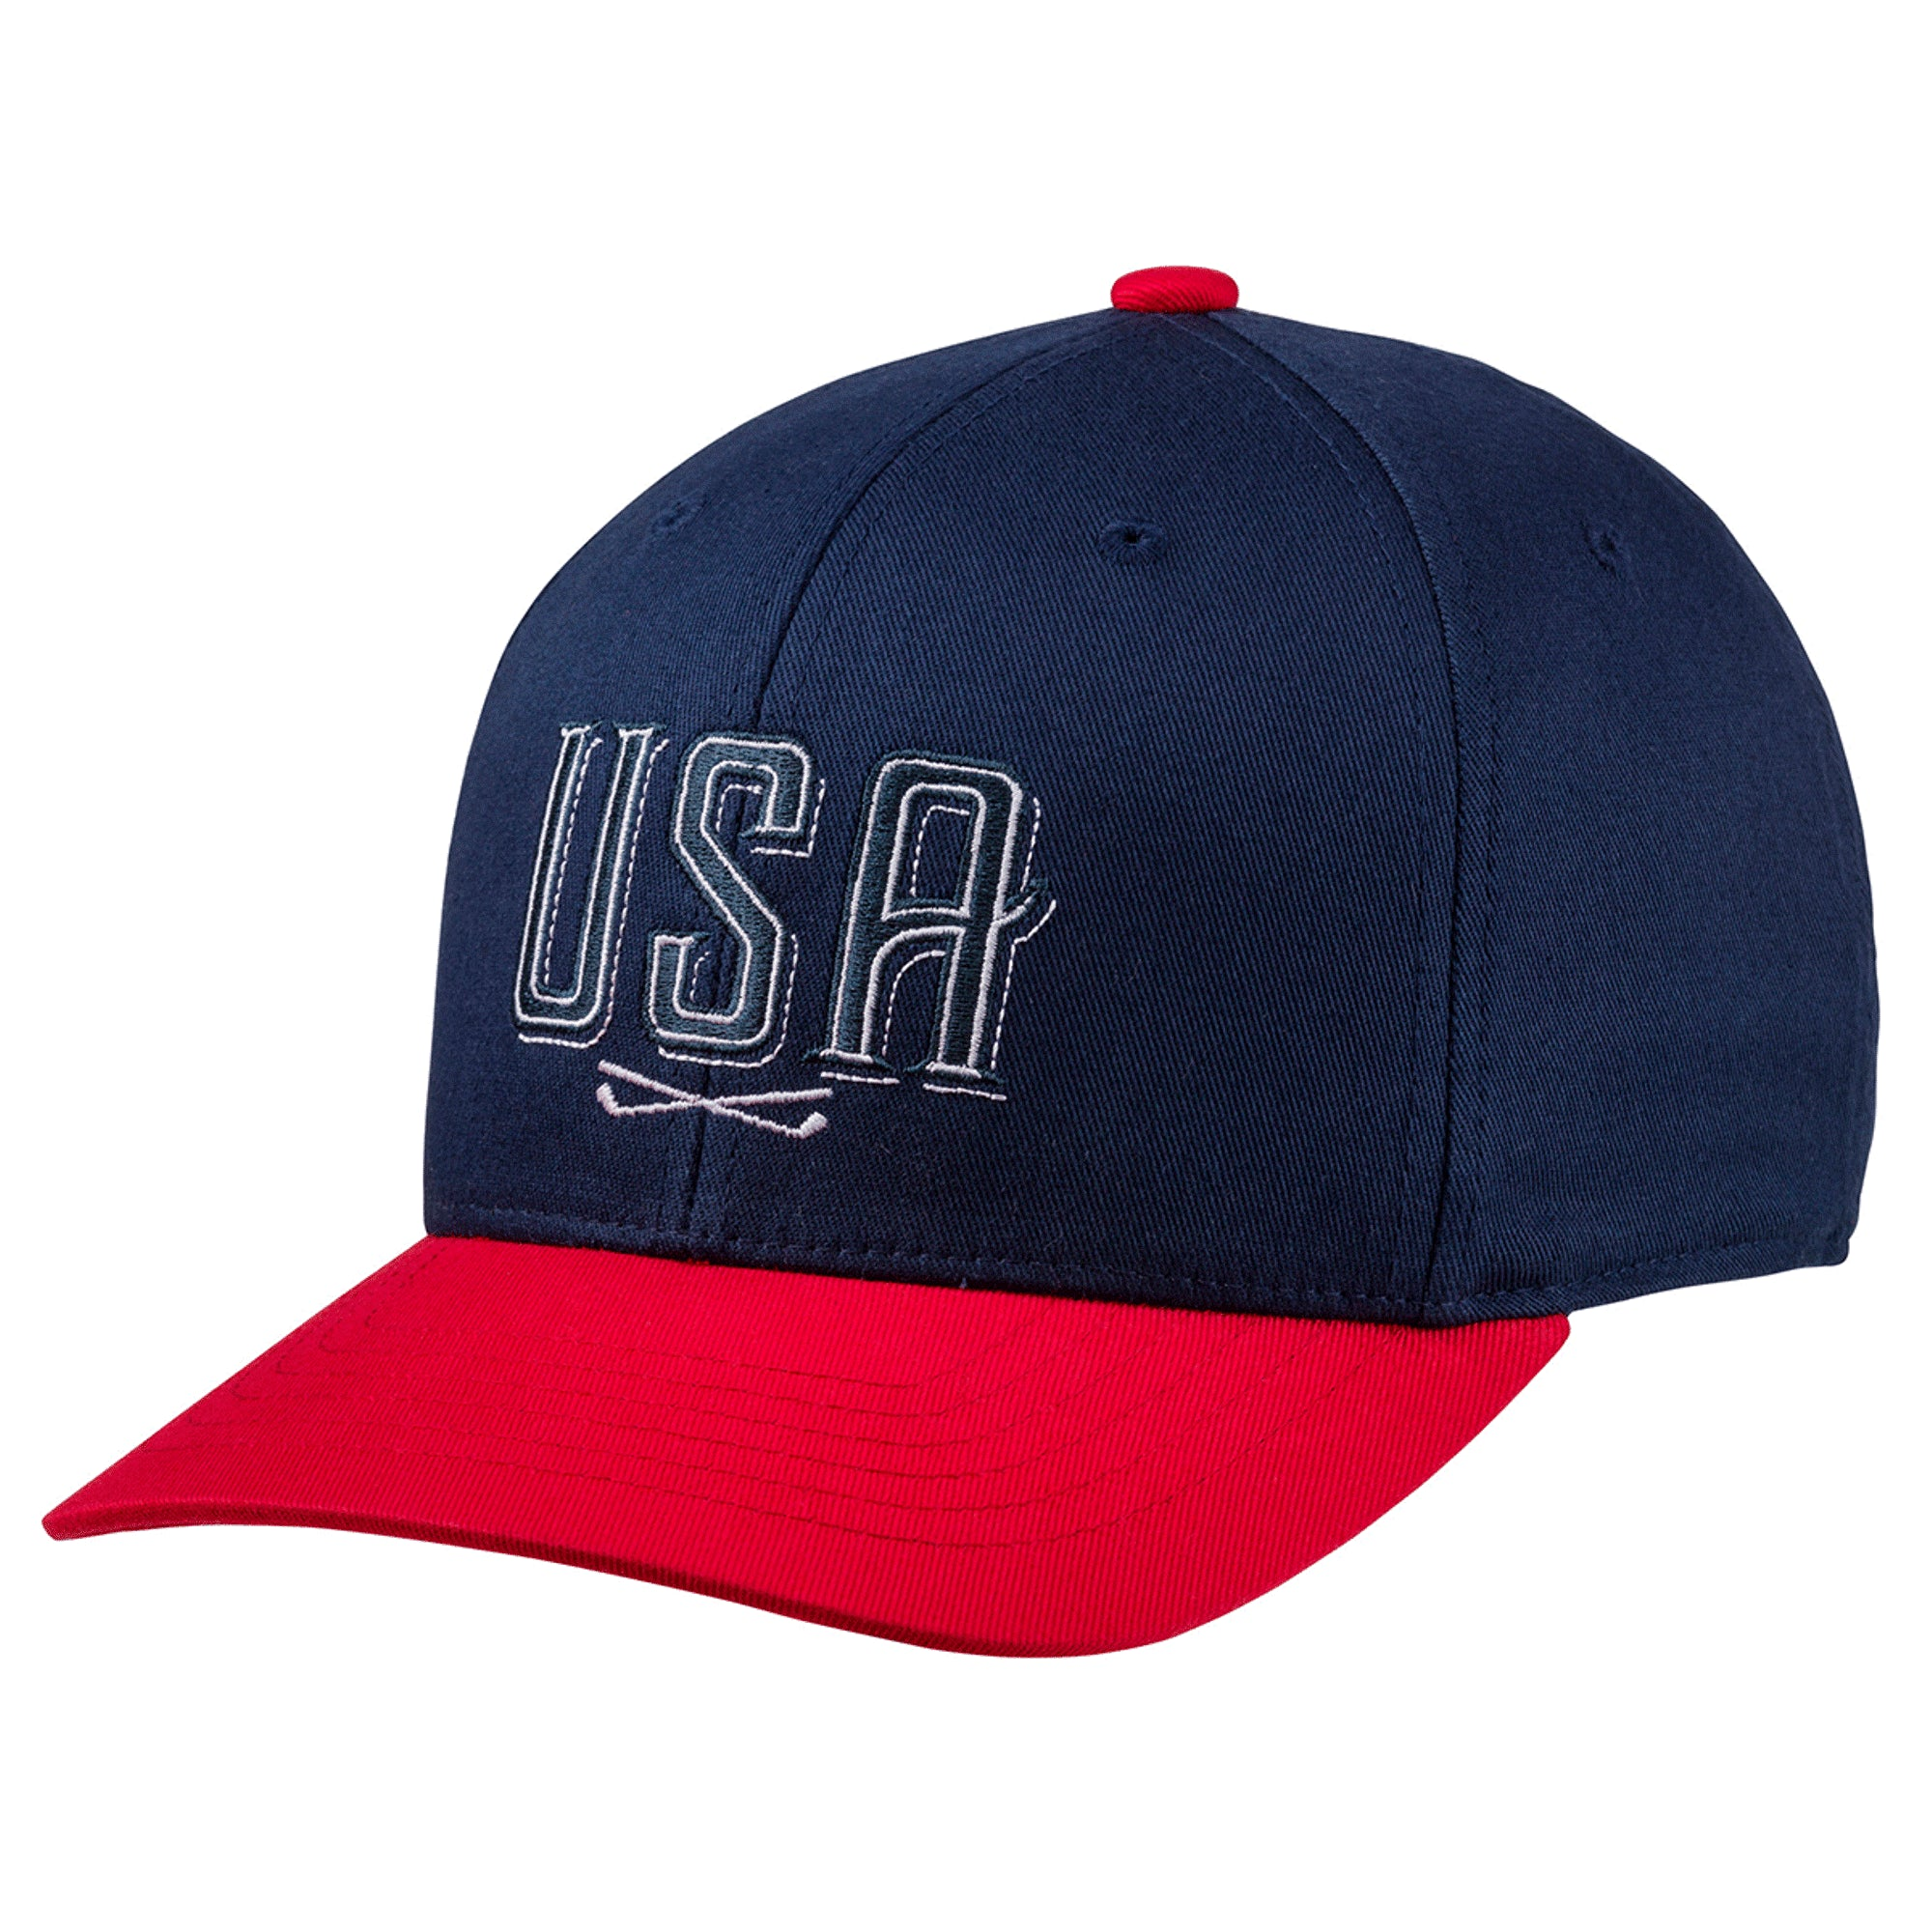 Puma Golf Snapback Team USA Cap